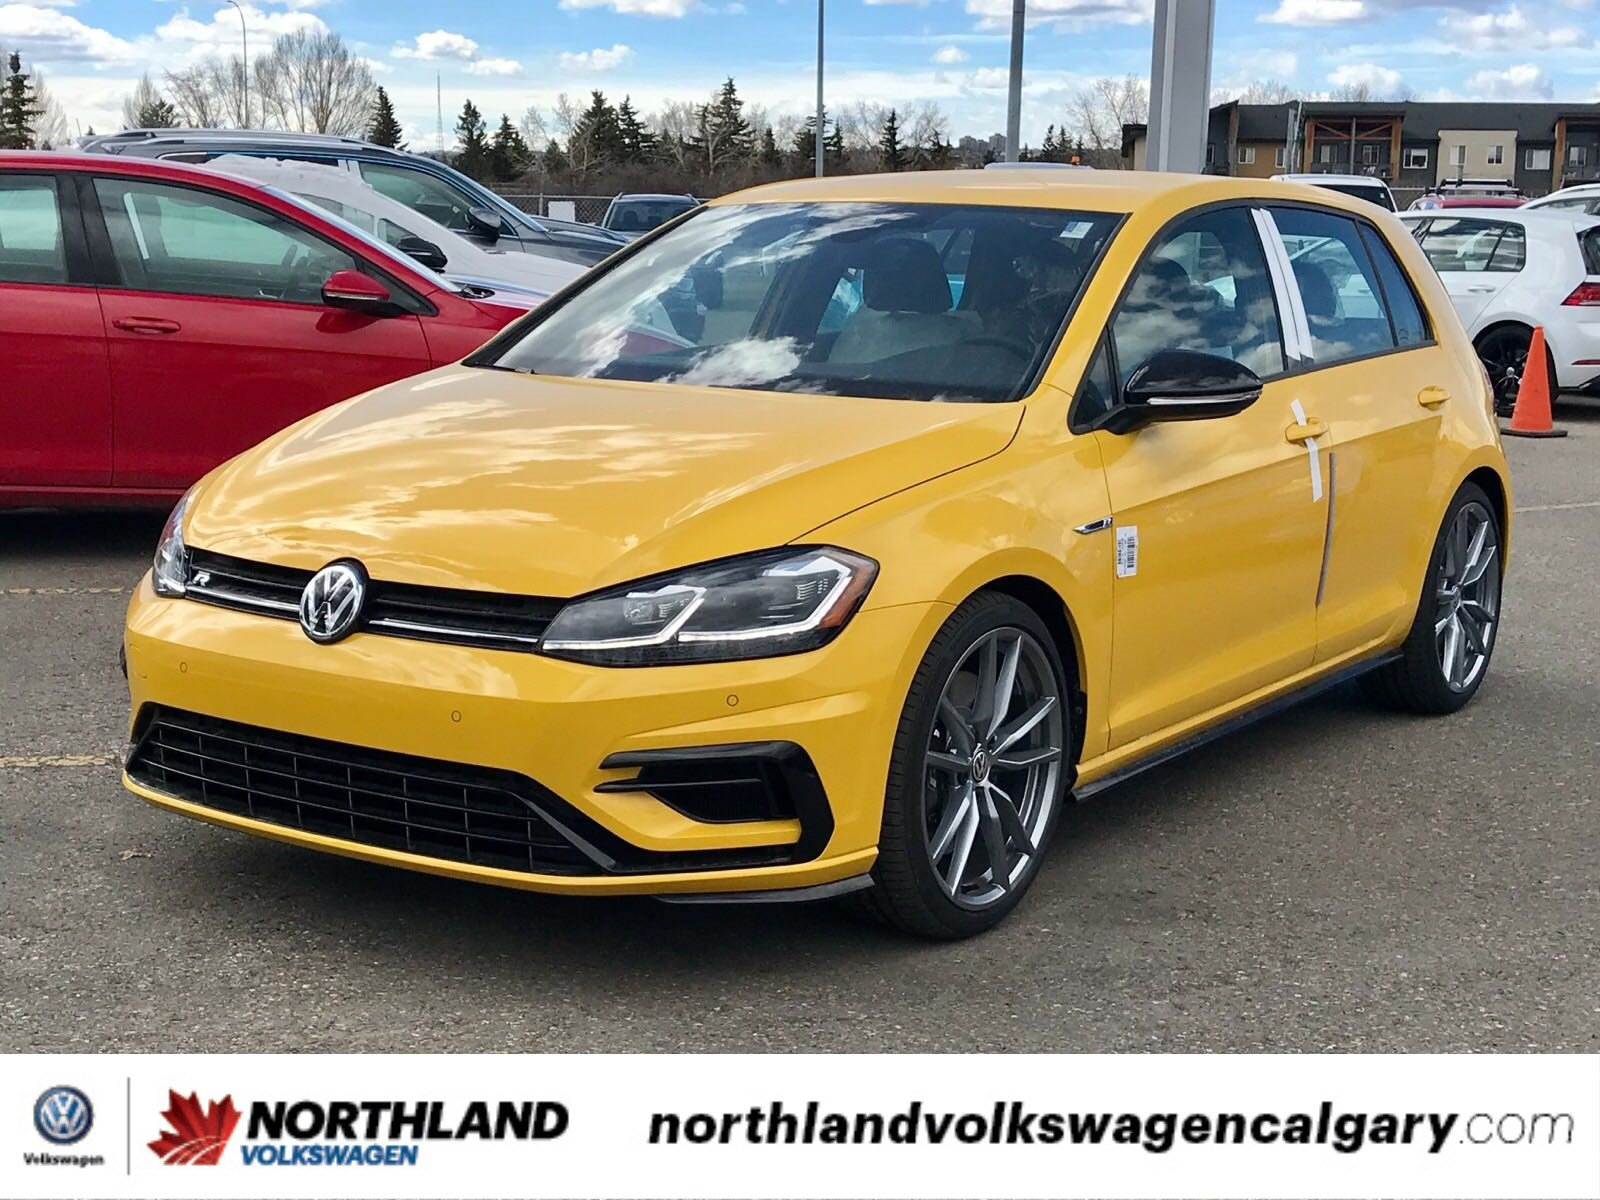 L132, 9150 - GINSTER YELLOW, GINSTERGELB (GOLF R)-2.jpg